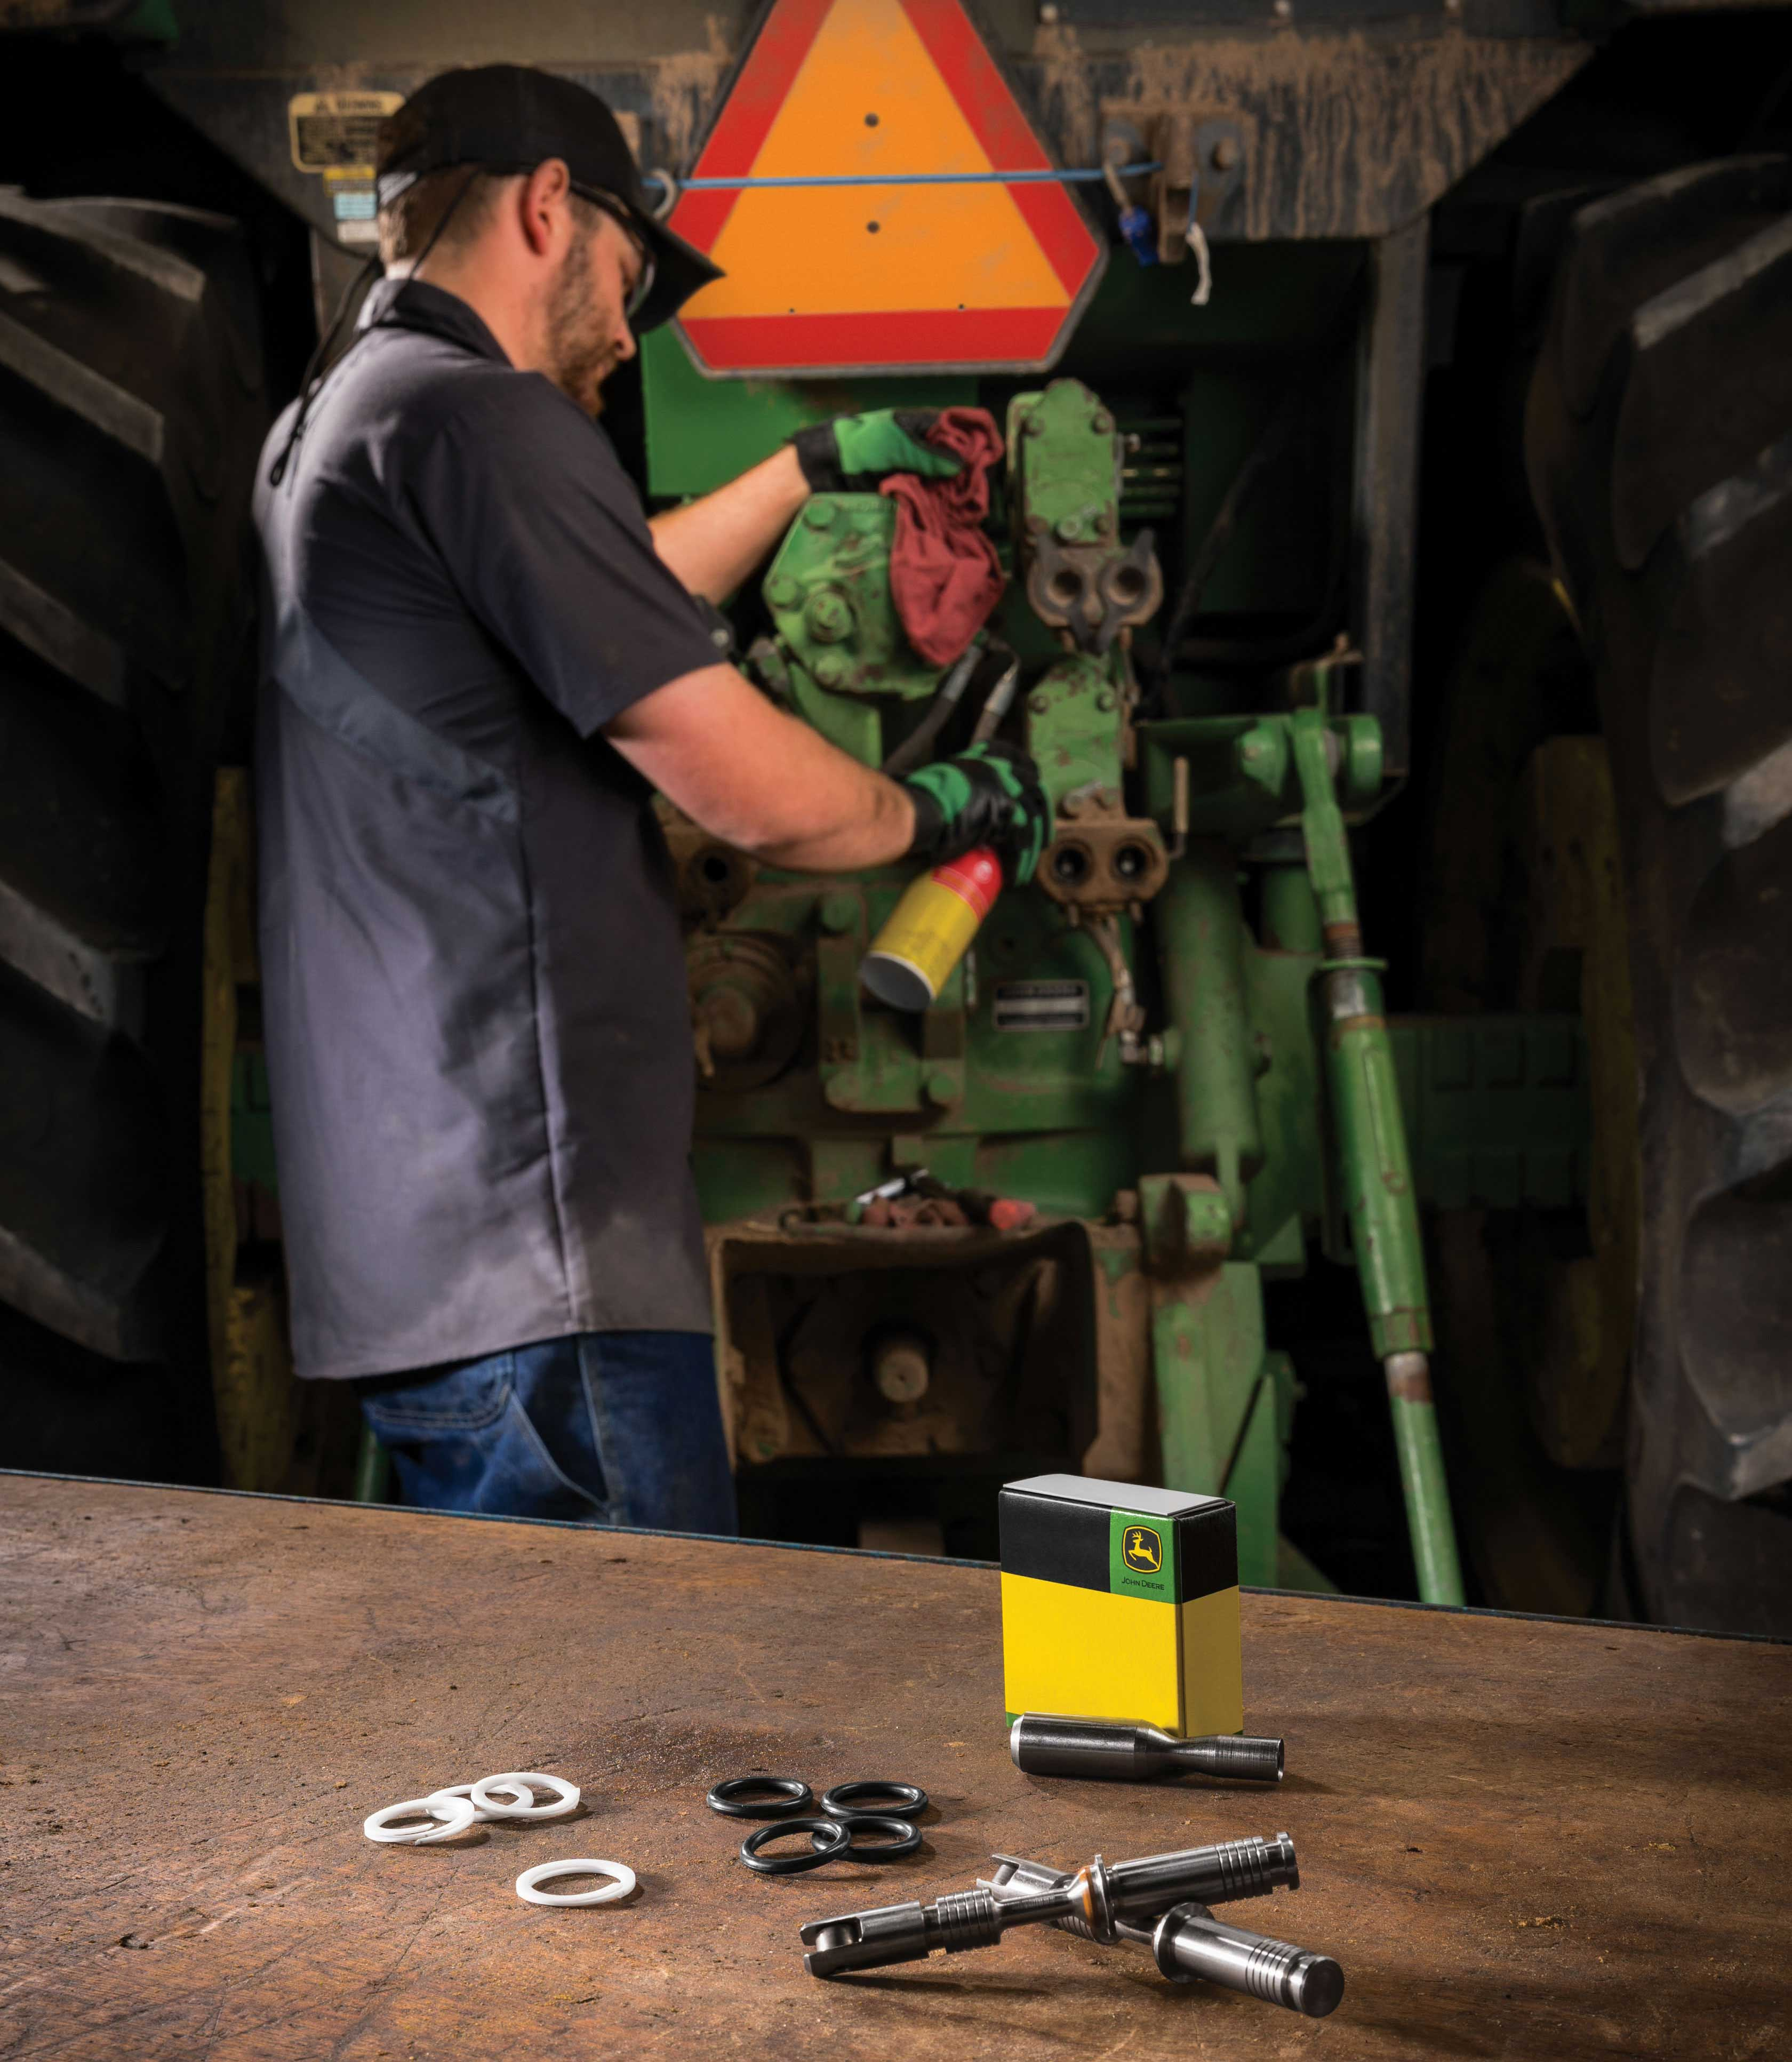 Genuine John Deere, Reman or A&I parts and attachments